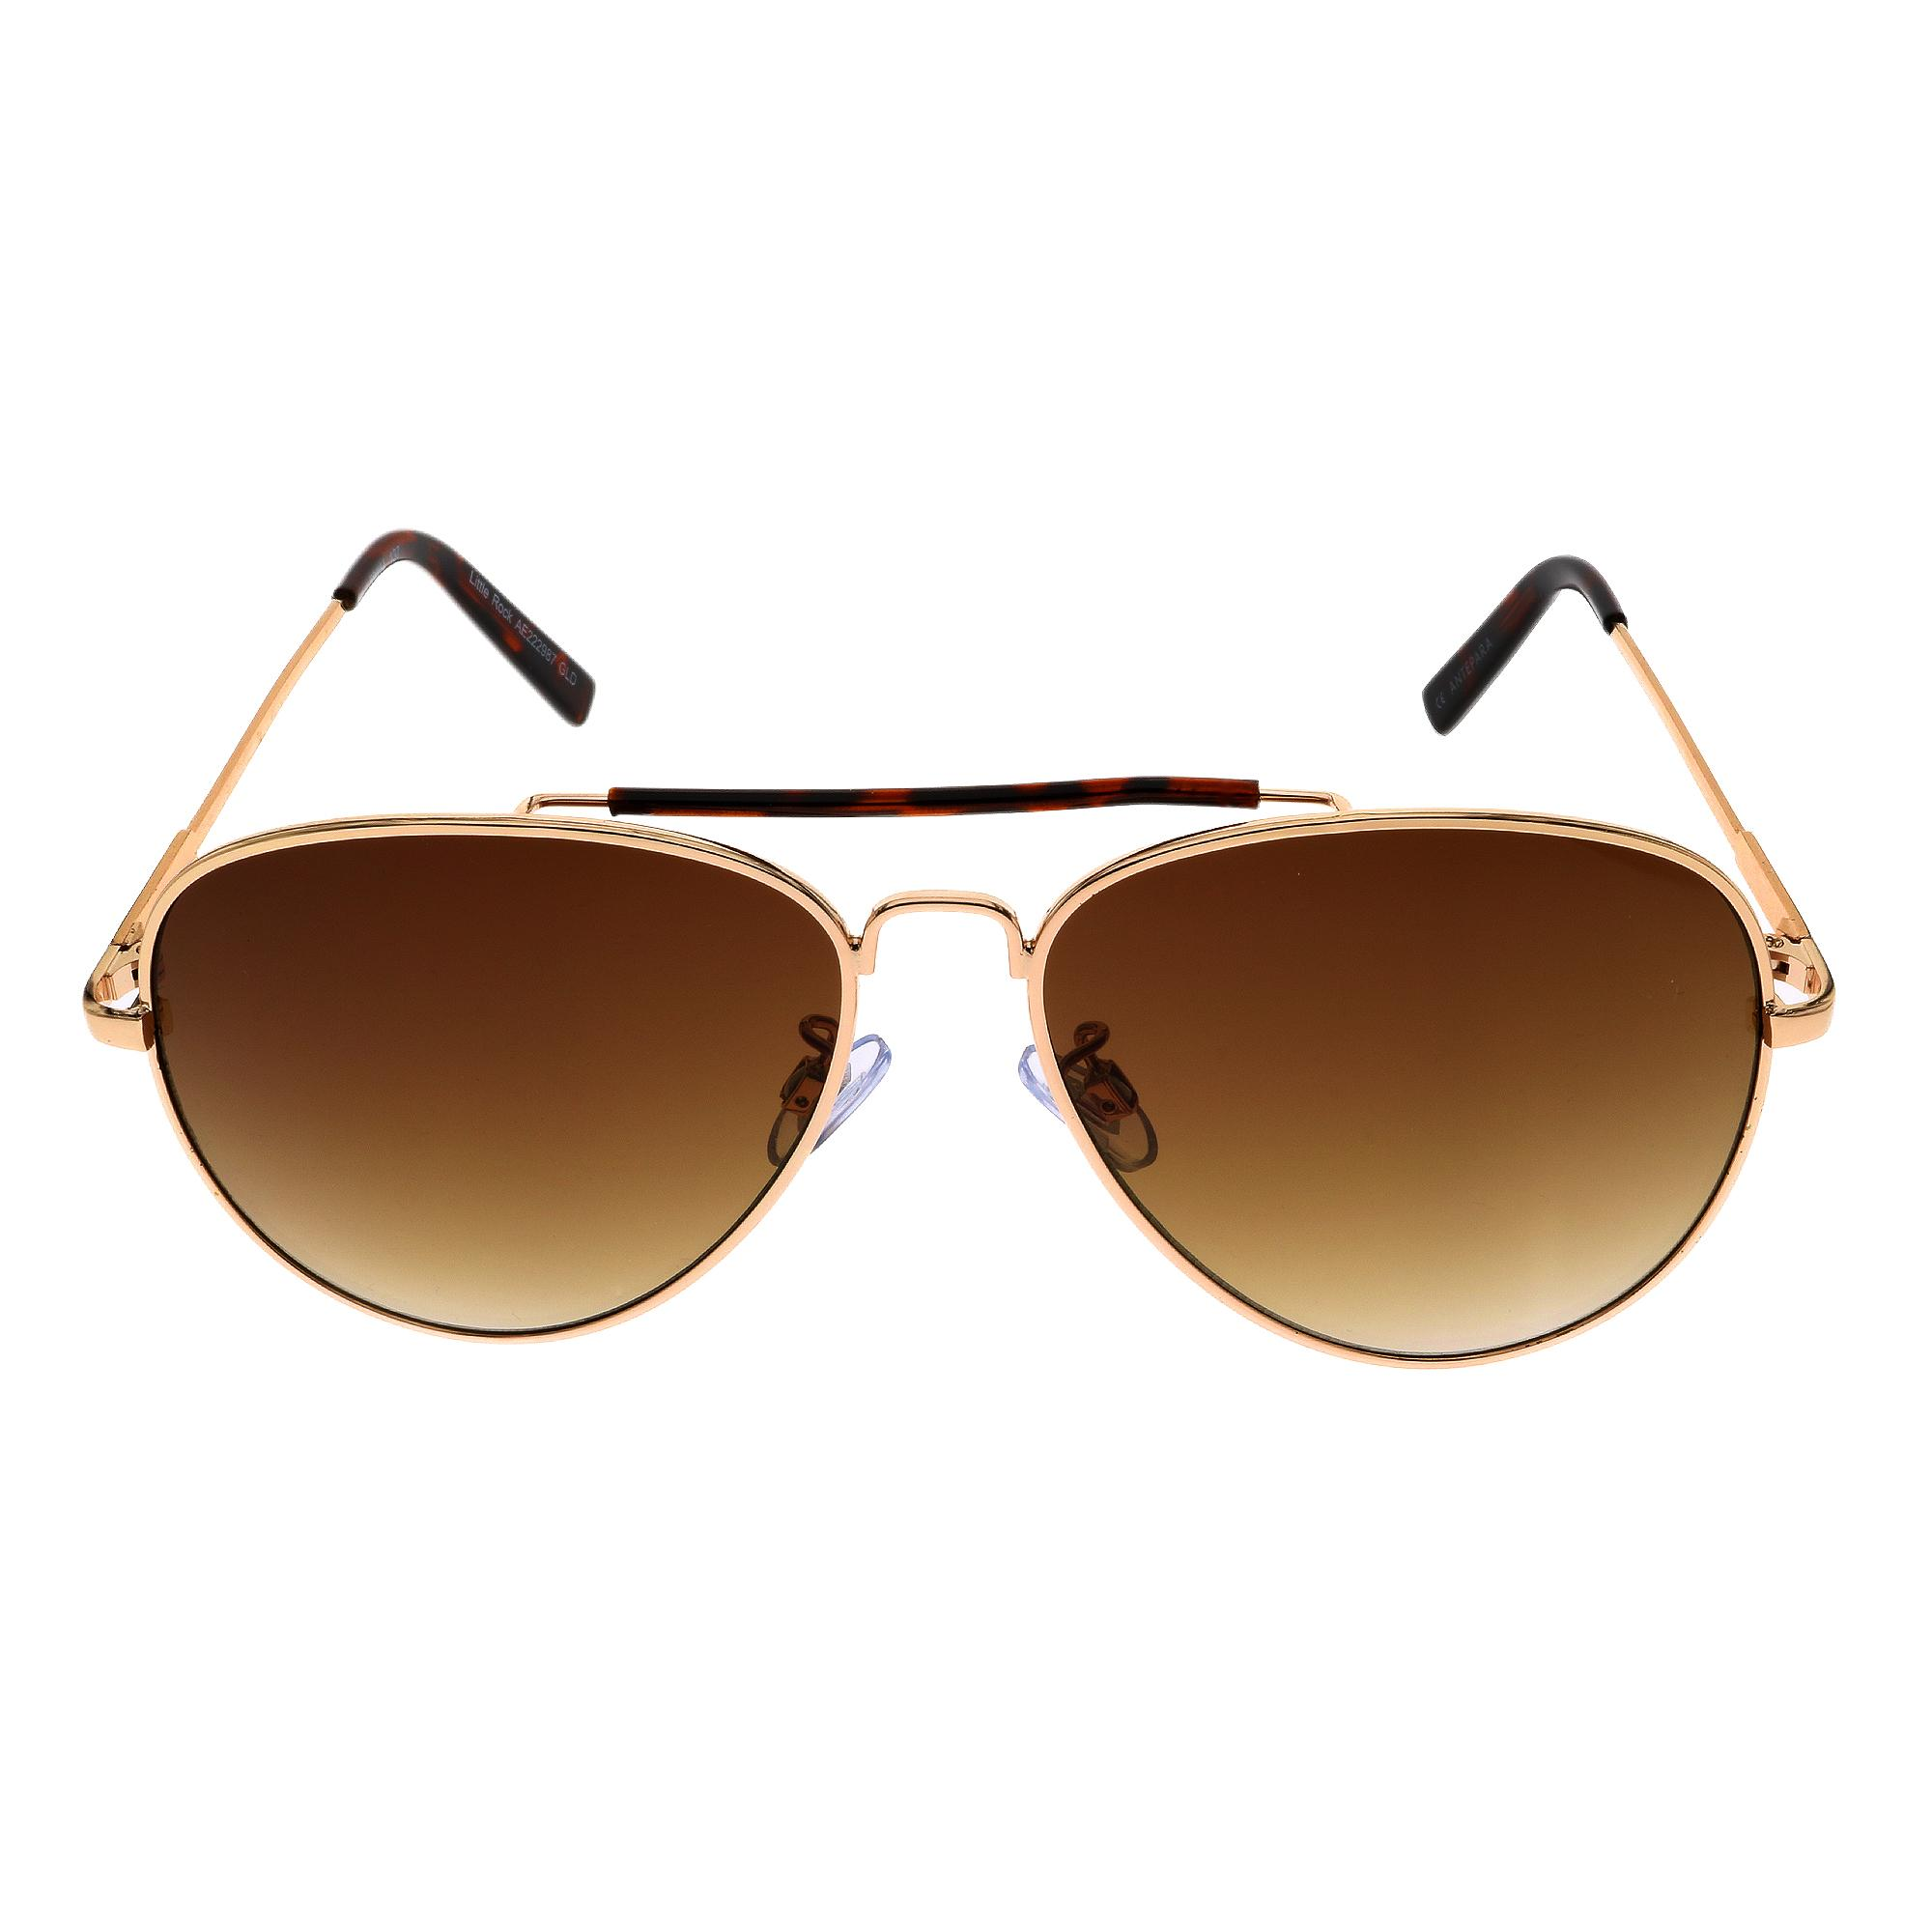 db261d67602 Philippines. Little Rock AE222987 GLD Sunglasses Gold Frame Brown Lens  (59-14-140)